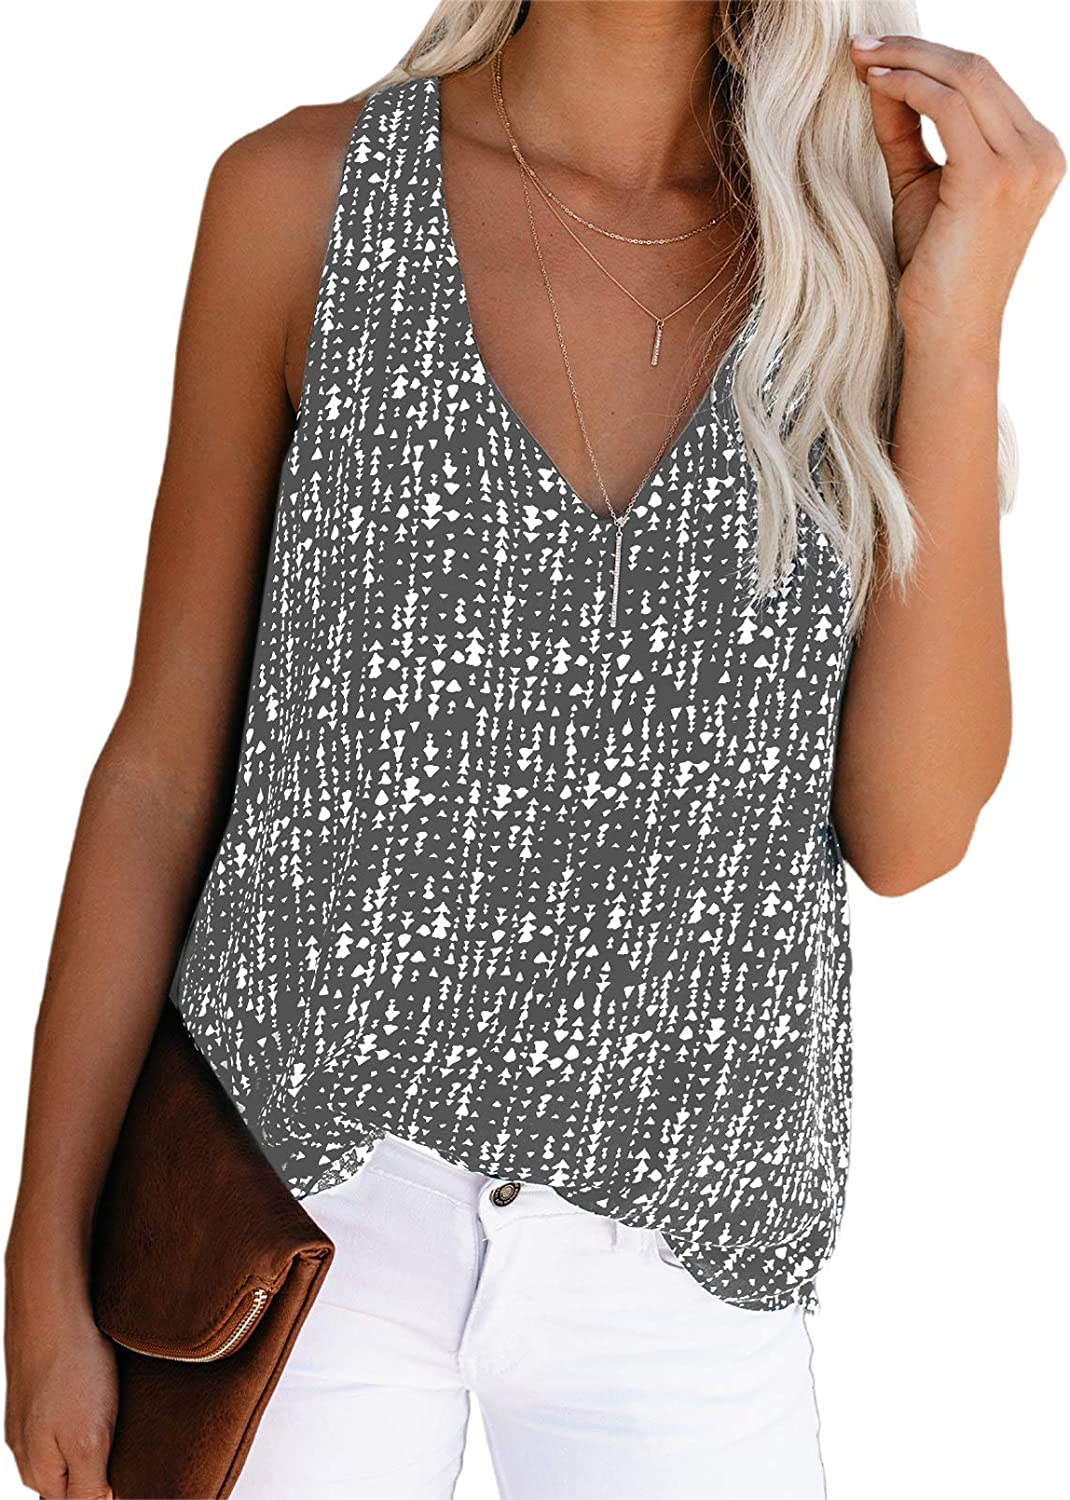 Canikat Sleeveless Tank Tops for Women Sexy V Neck Halter Tank Blouse Shirts Loose Elegant Printed Cami Top Summer Casual Flowy Chiffon Tank Blouses for Teen Girls Juniors Ladies Grey M